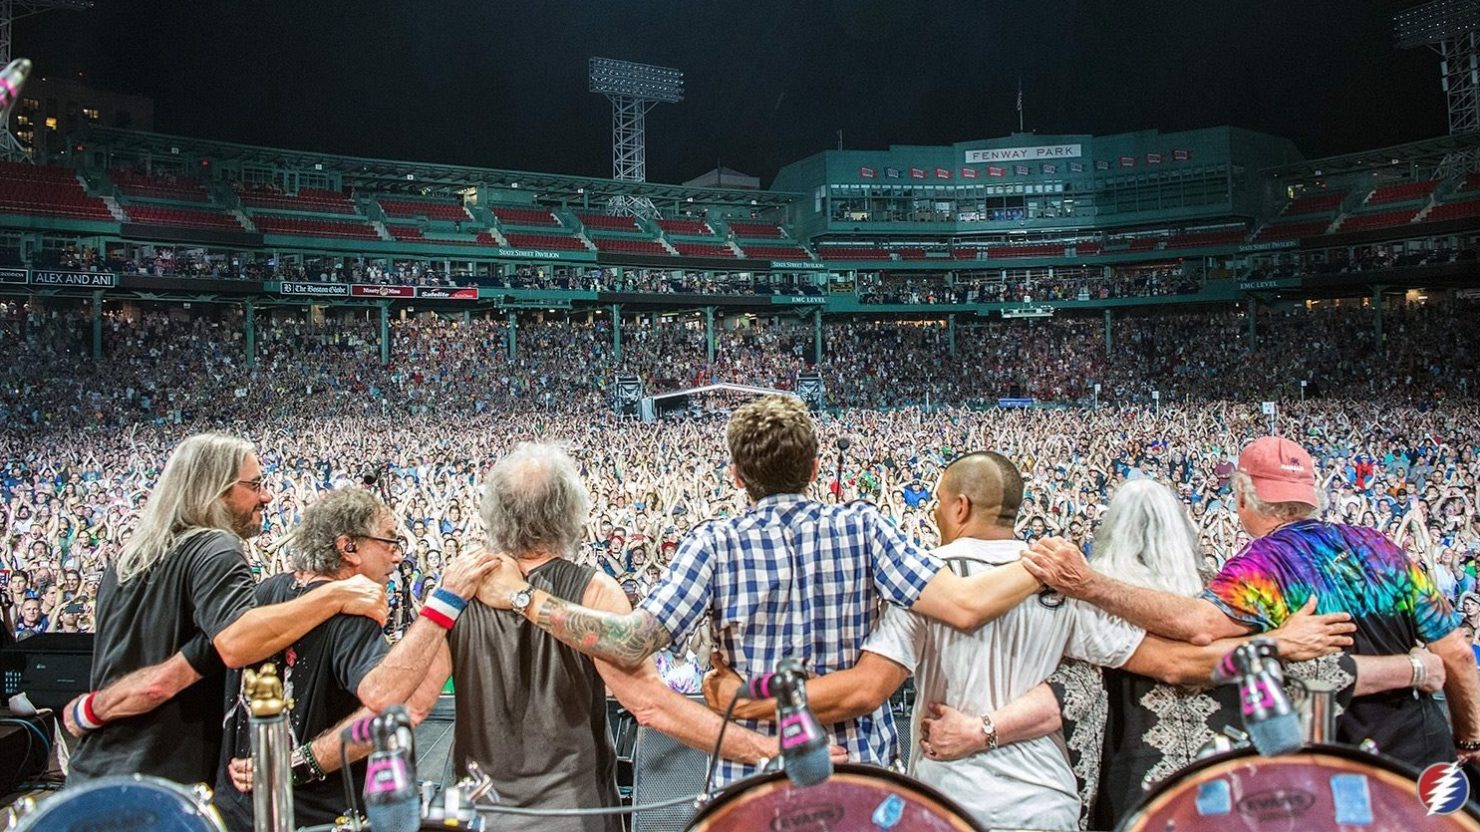 Dead  Company Conclude Visit To Fenway Park In Boston